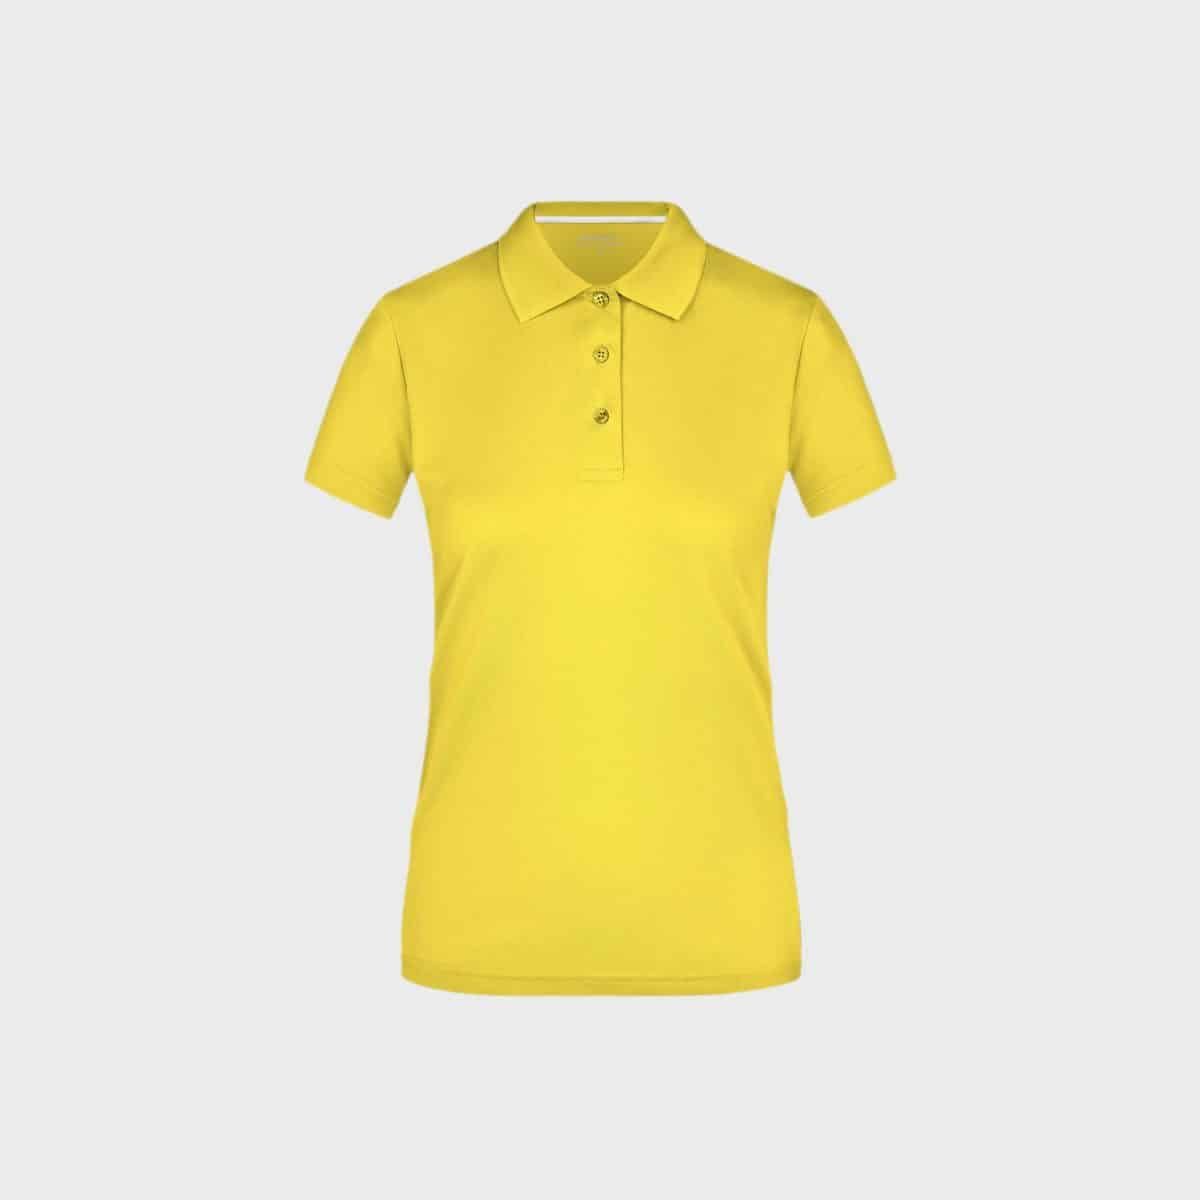 sportshirt-polo-t-tshirt-damen-yellow-kaufen-besticken_stickmanufaktur